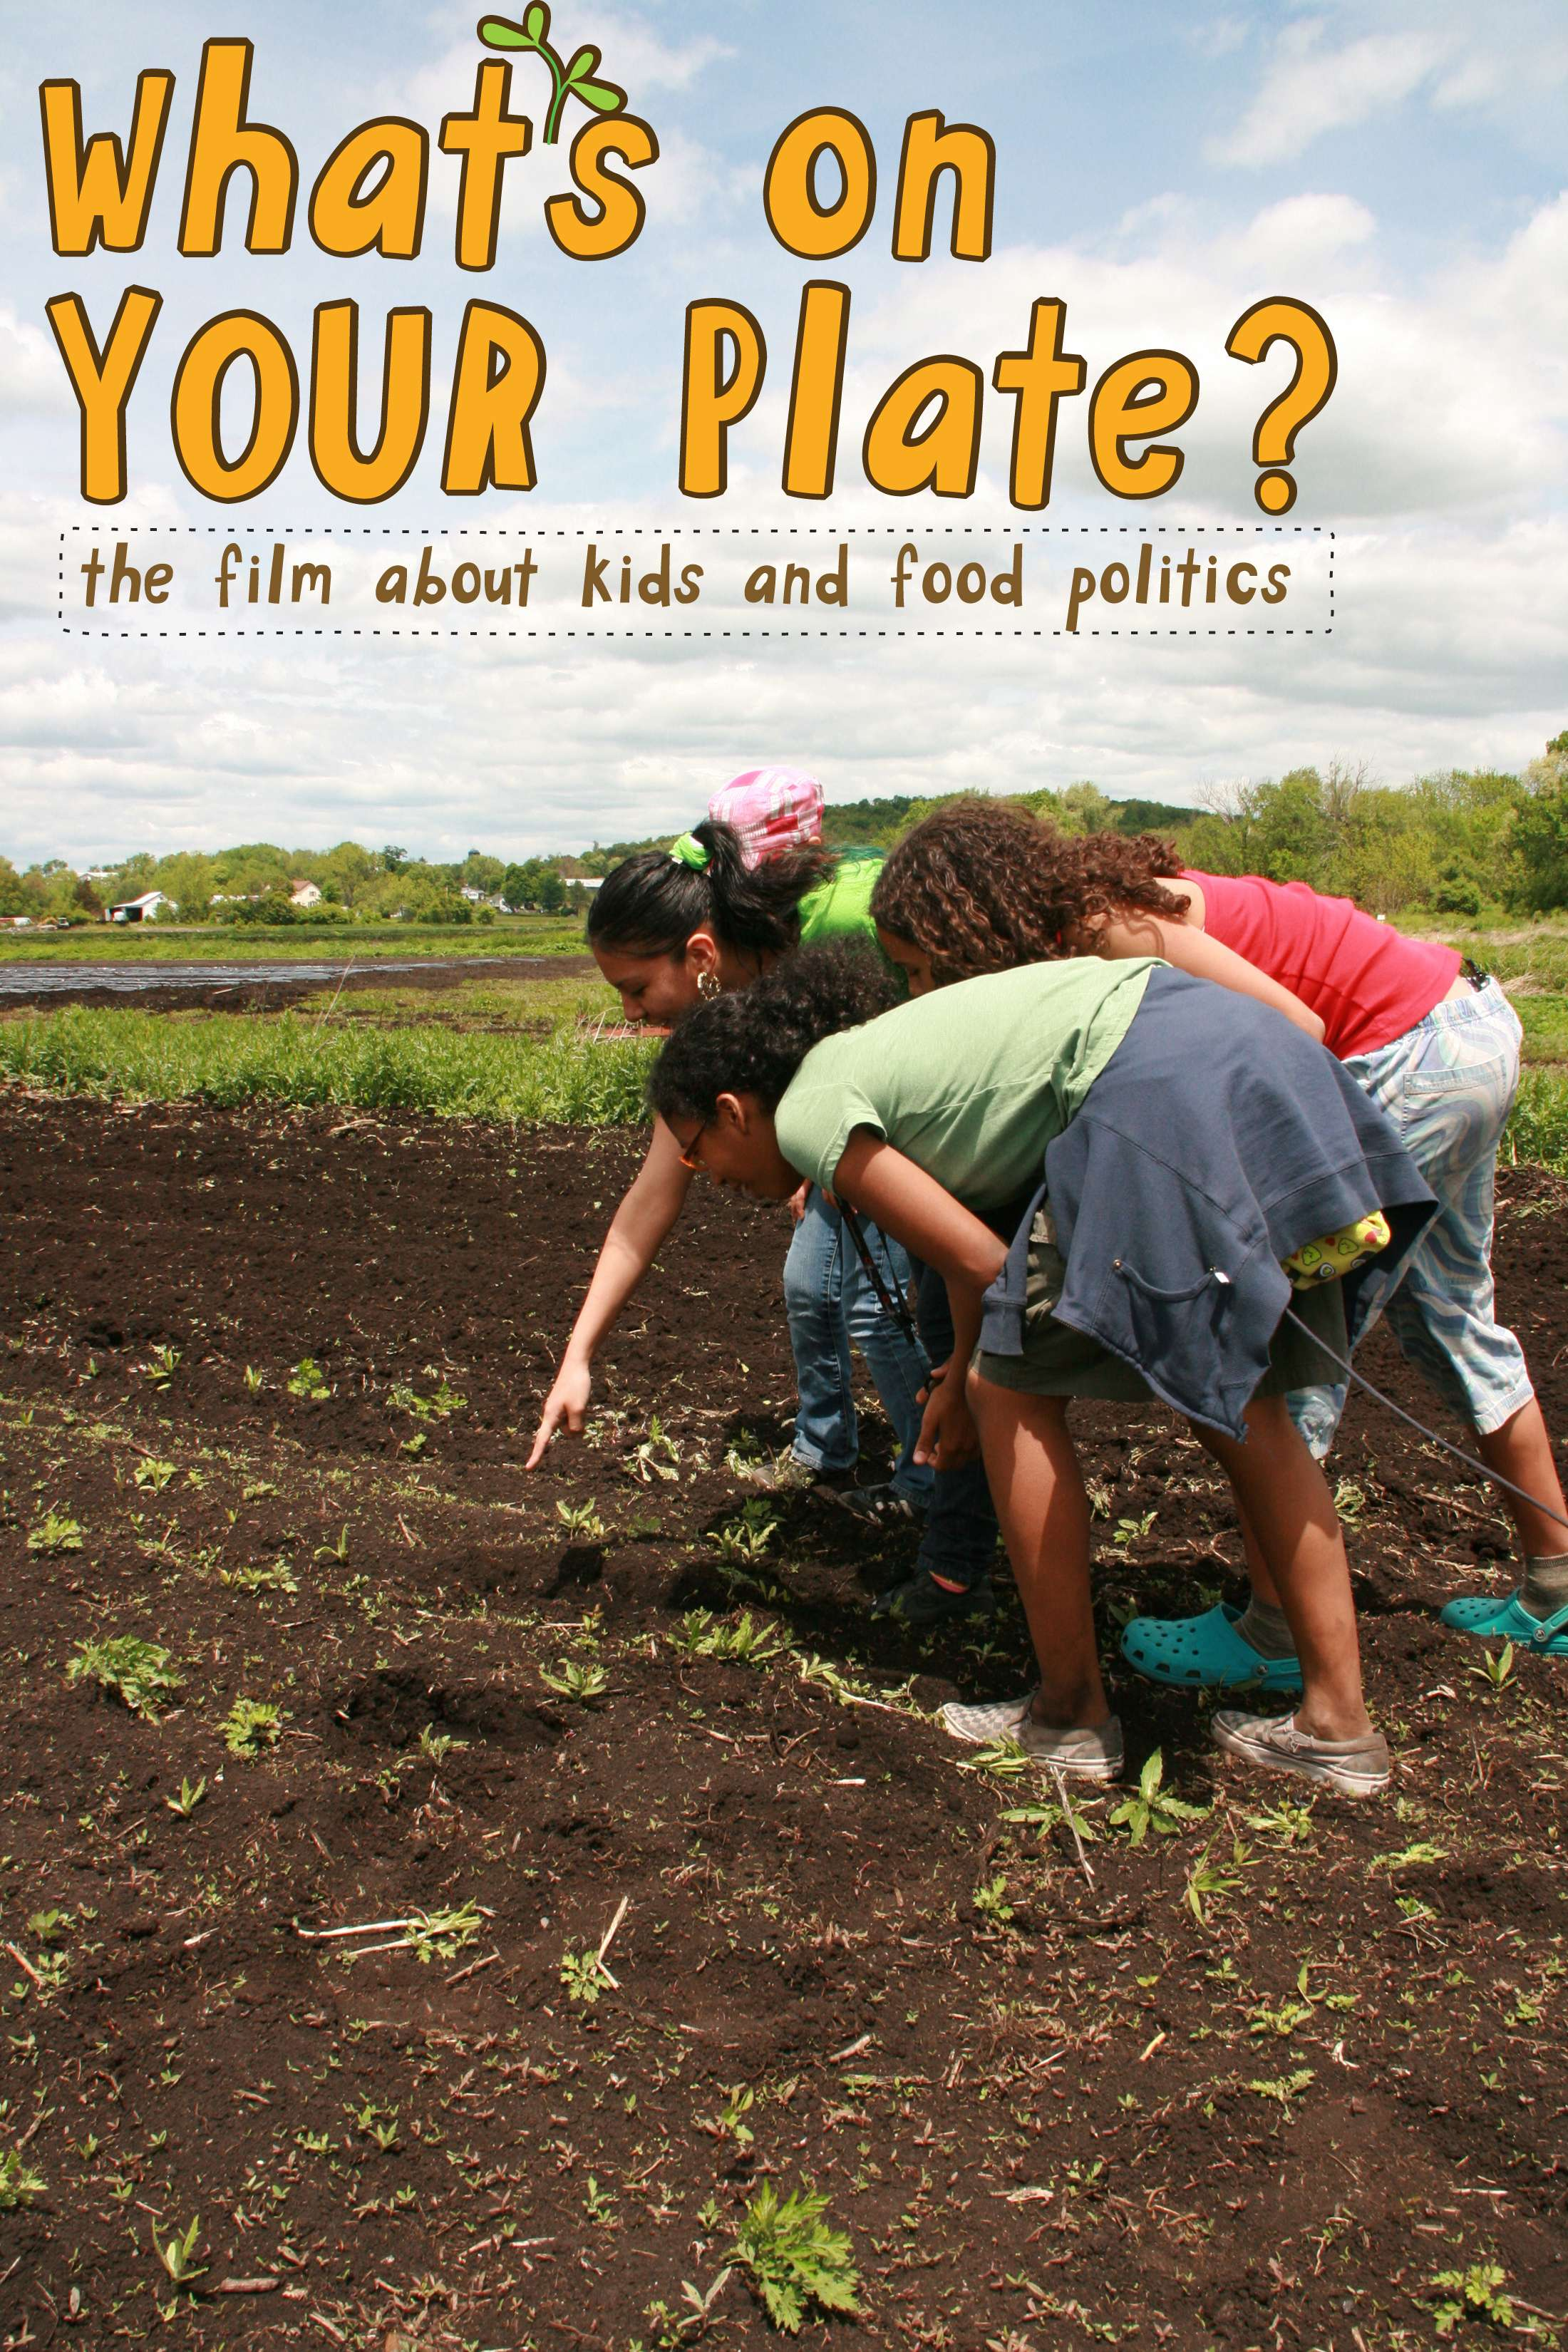 What's on Your Plate? Catherine Gund